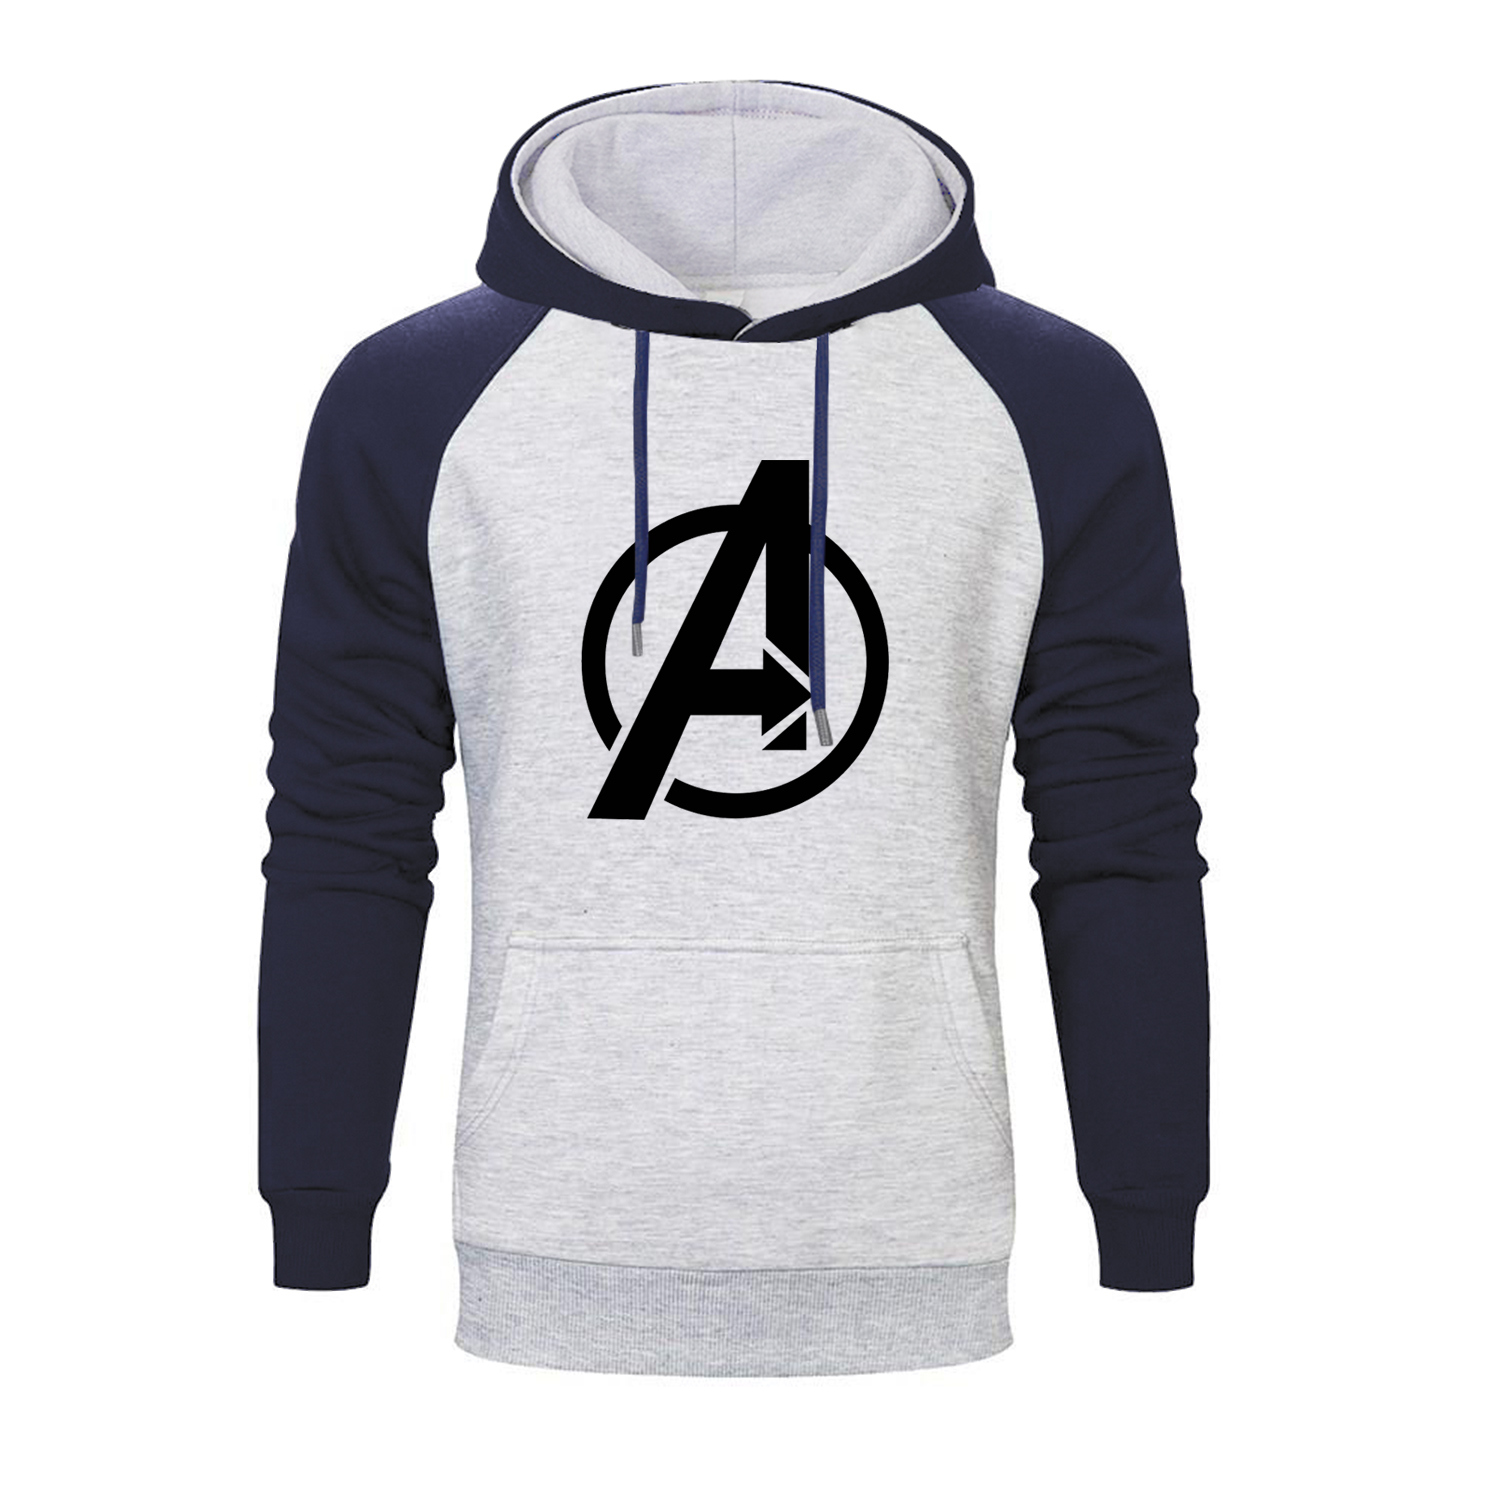 Marvel Movie Avengers Logo Printed Raglan Hoodies Men 2019 Autumn Thanos Infinity Gauntlet Men